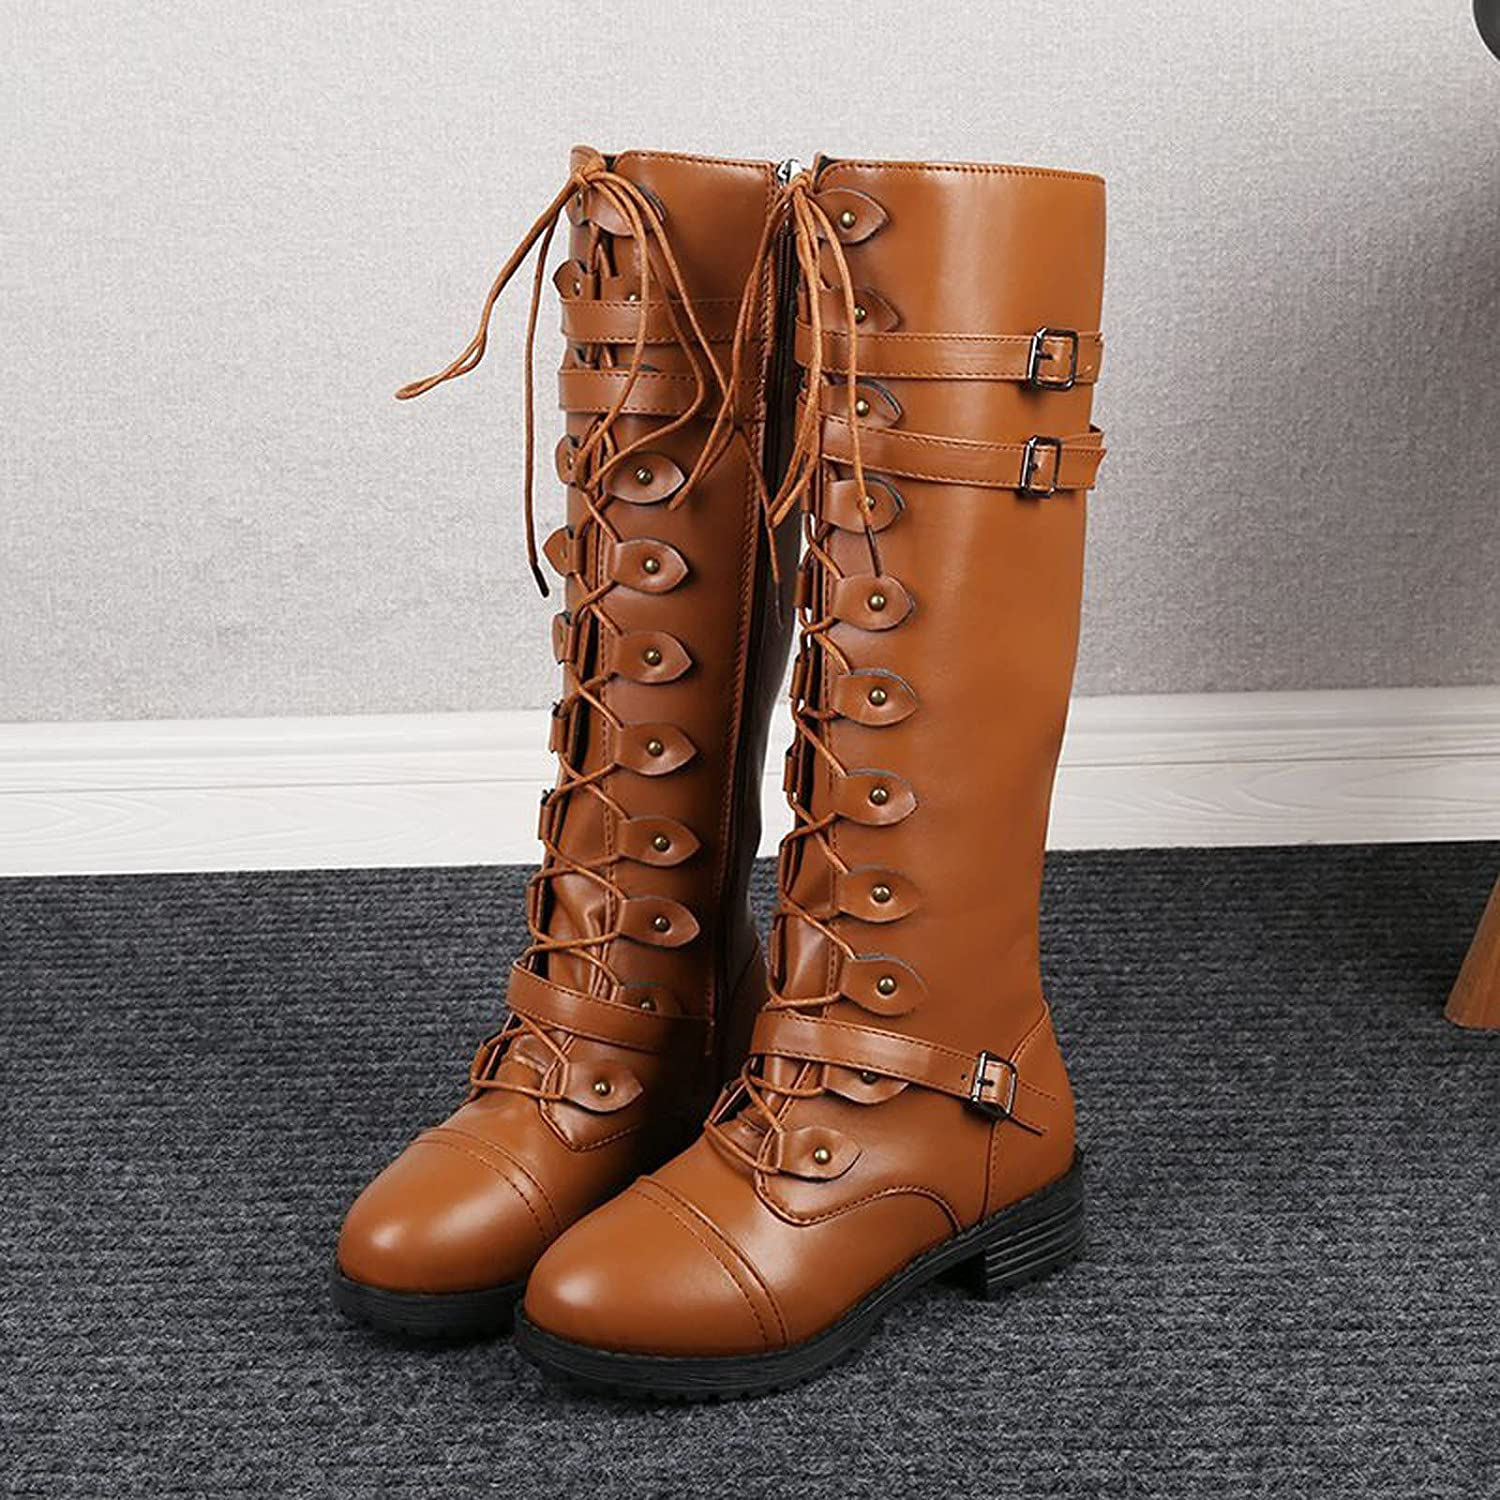 Women's Studded Mid Calf Combat Boots Cool Boots Round Toe Double Straps Buckles Low Heel Booties For Driving